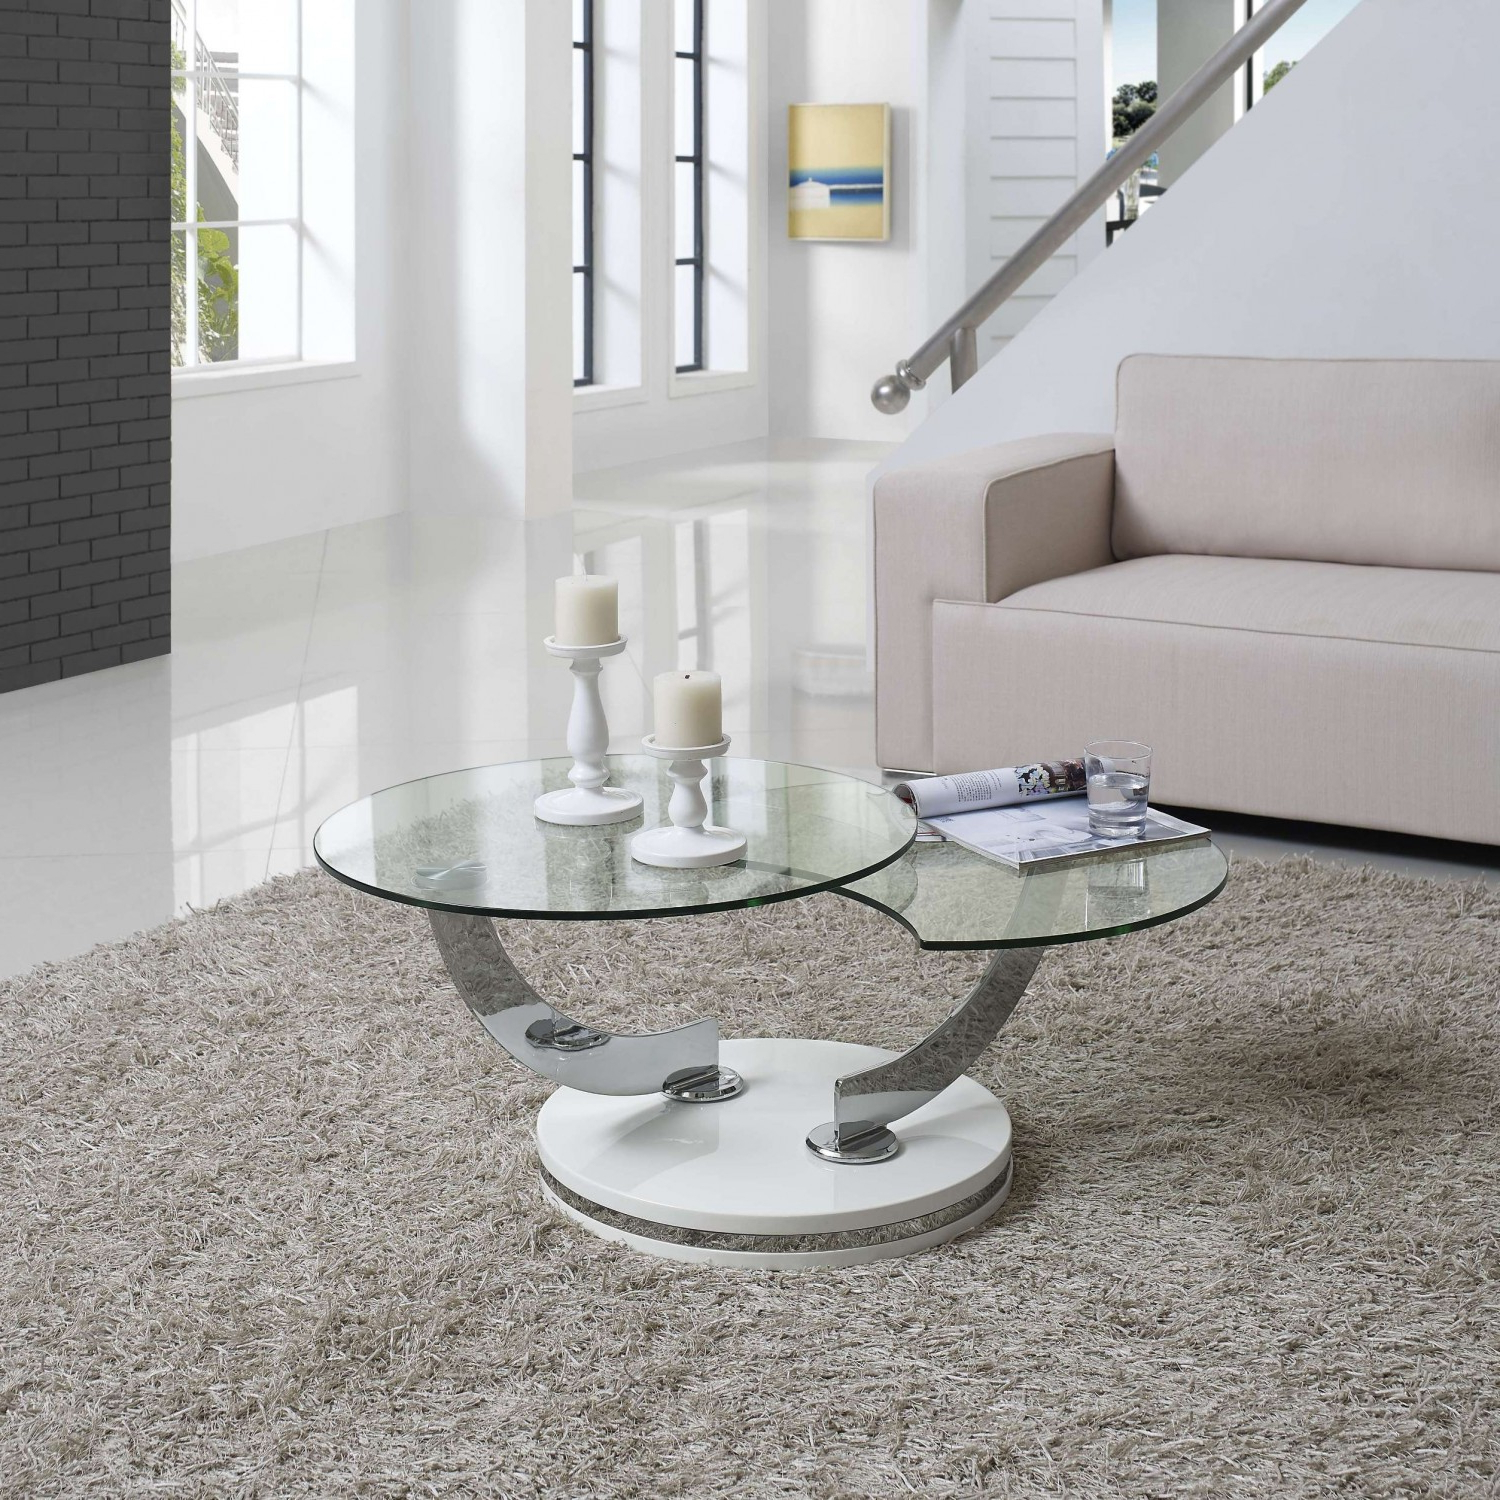 Spin Rotating Coffee Tables Regarding Most Recently Released Rotating Coffee Table – Coffee Drinker (View 16 of 20)